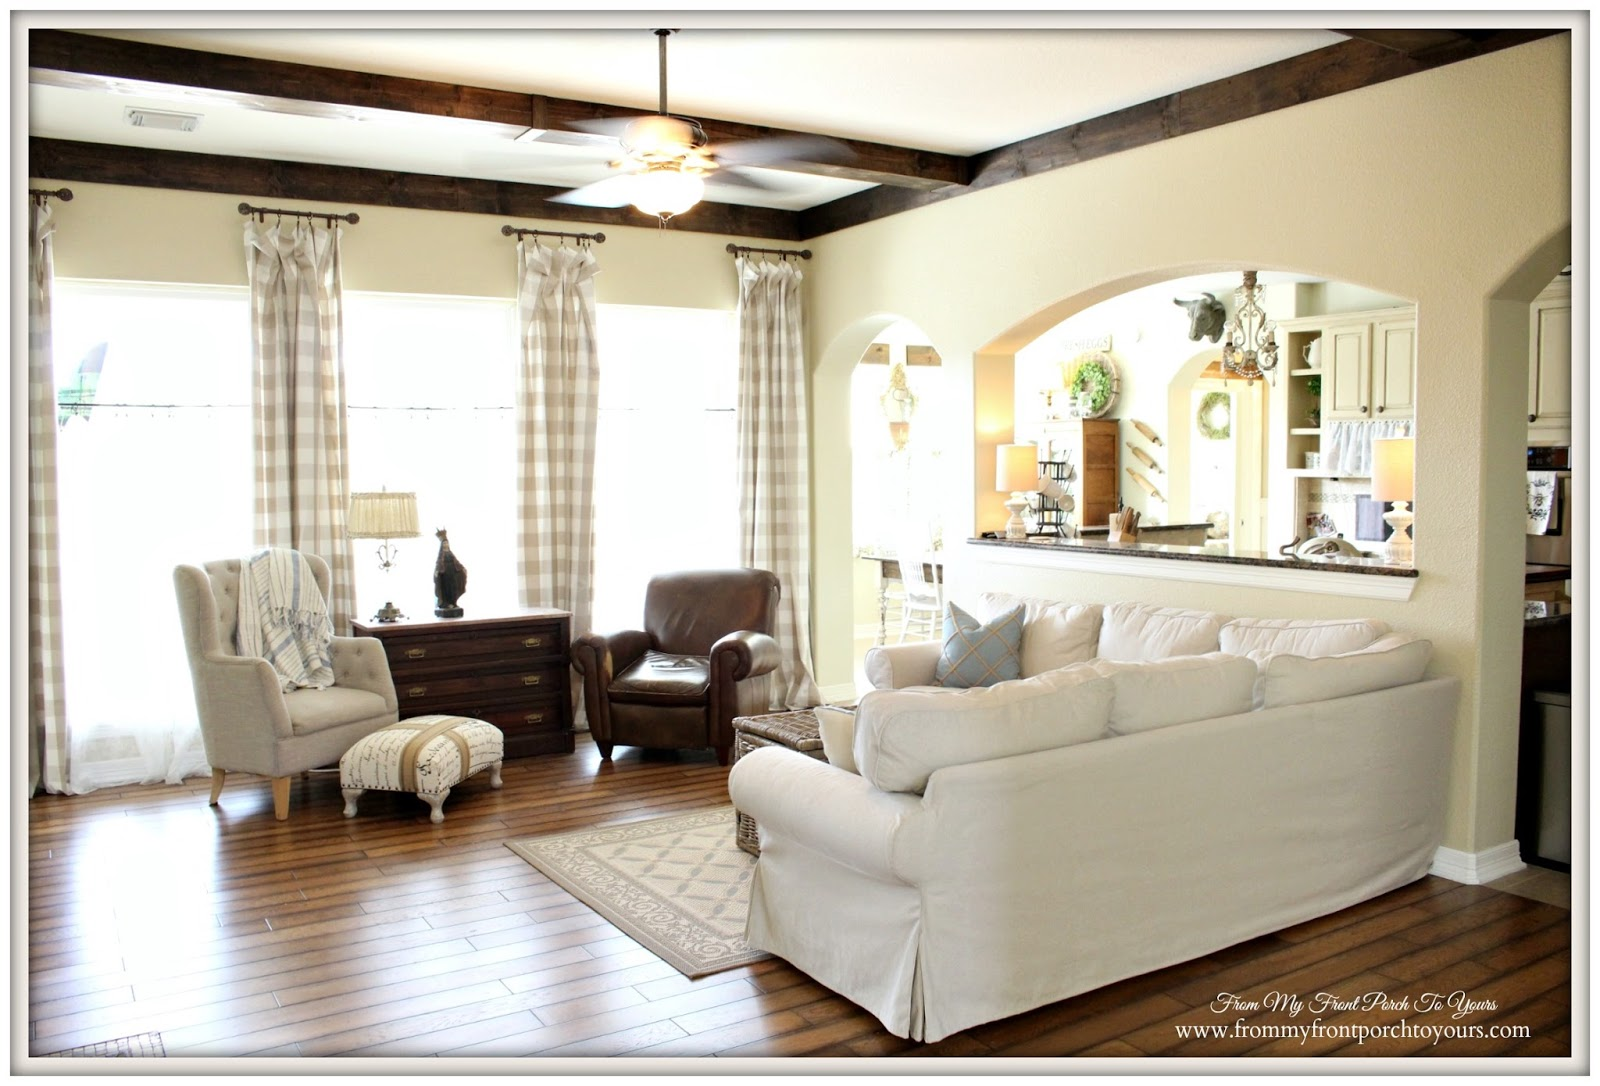 Ektorp Living Room Designer Radiators For Rooms From My Front Porch To Yours Farmhouse With Sofa Buffalo Check Curtains